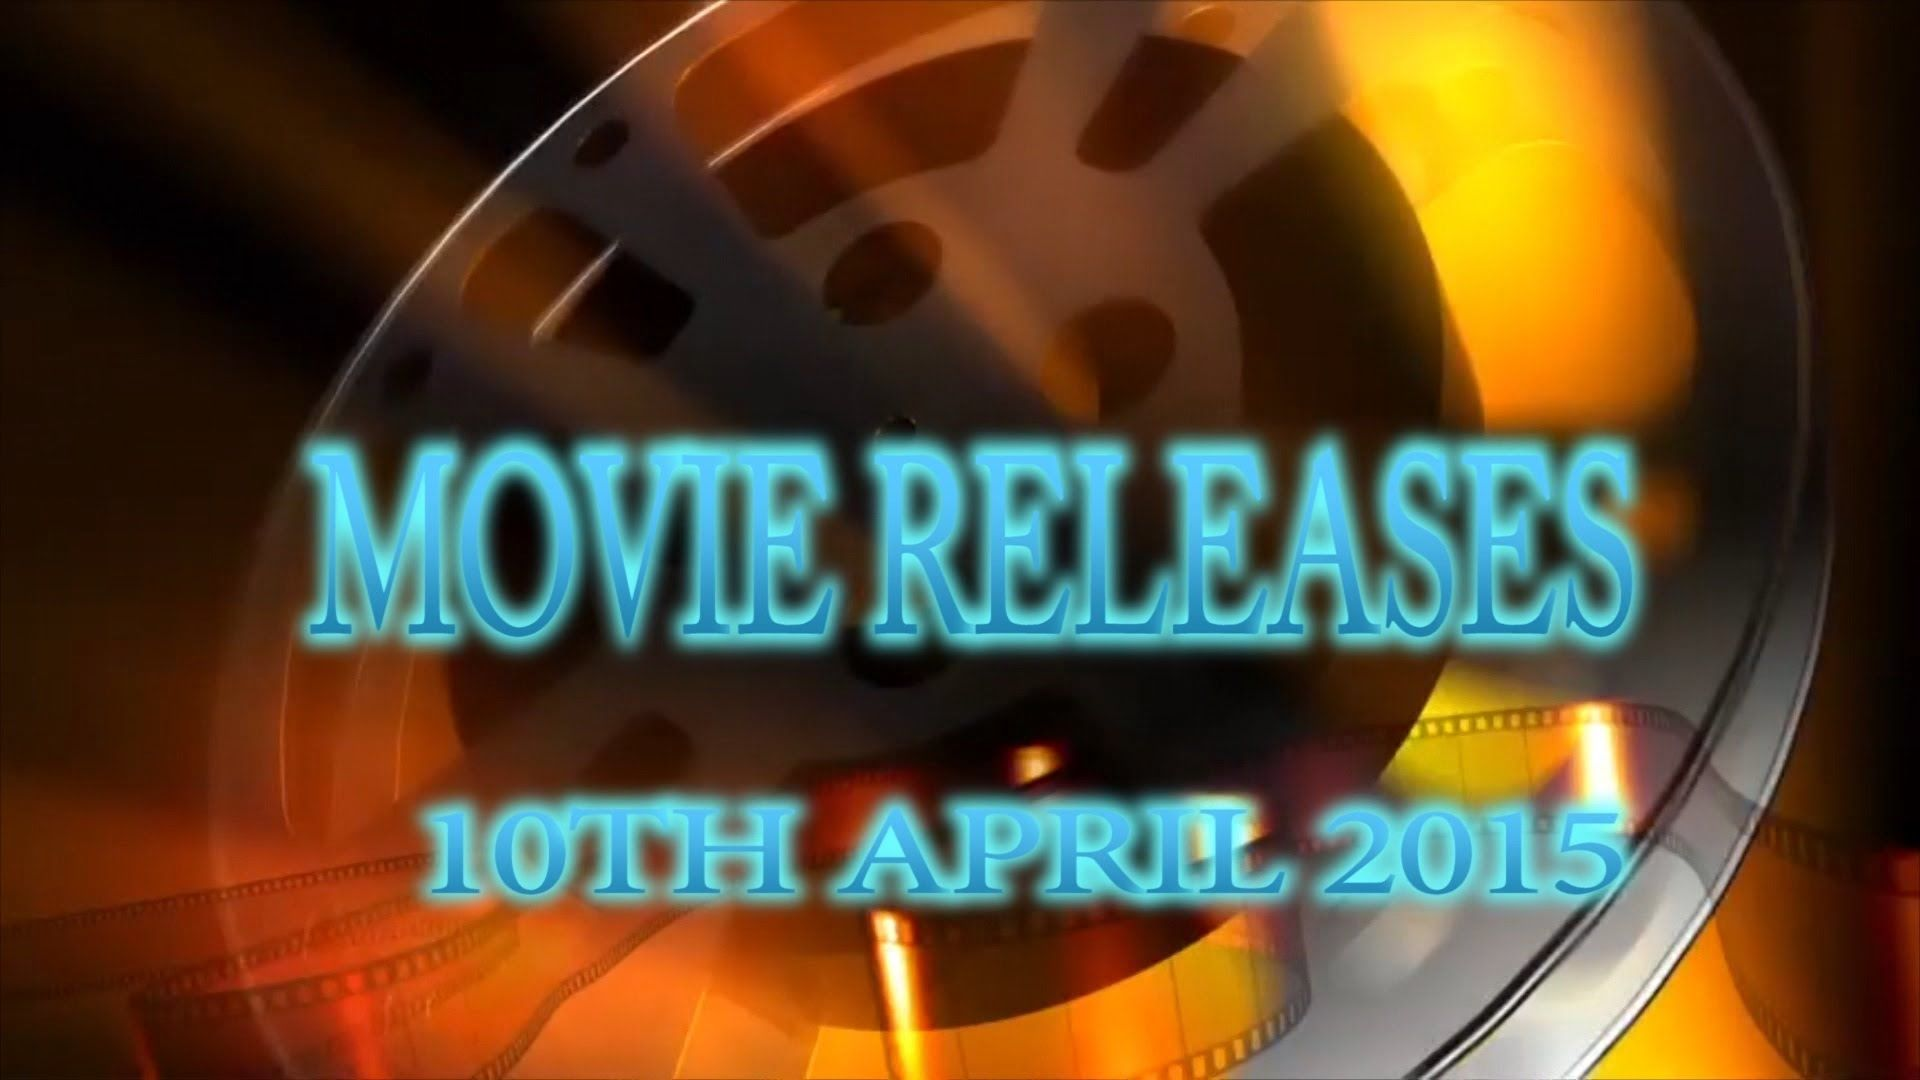 Movie Releases, Movie News & Movie Trailers for April 10th 2015    PopcornCinemaShow takes a look at what new at the cinema with this weeks new film releases.  Film News    Movie Releases ; Film Releases ; Cinema Releases   https://www.youtube.com/user/PopcornCinemaShow